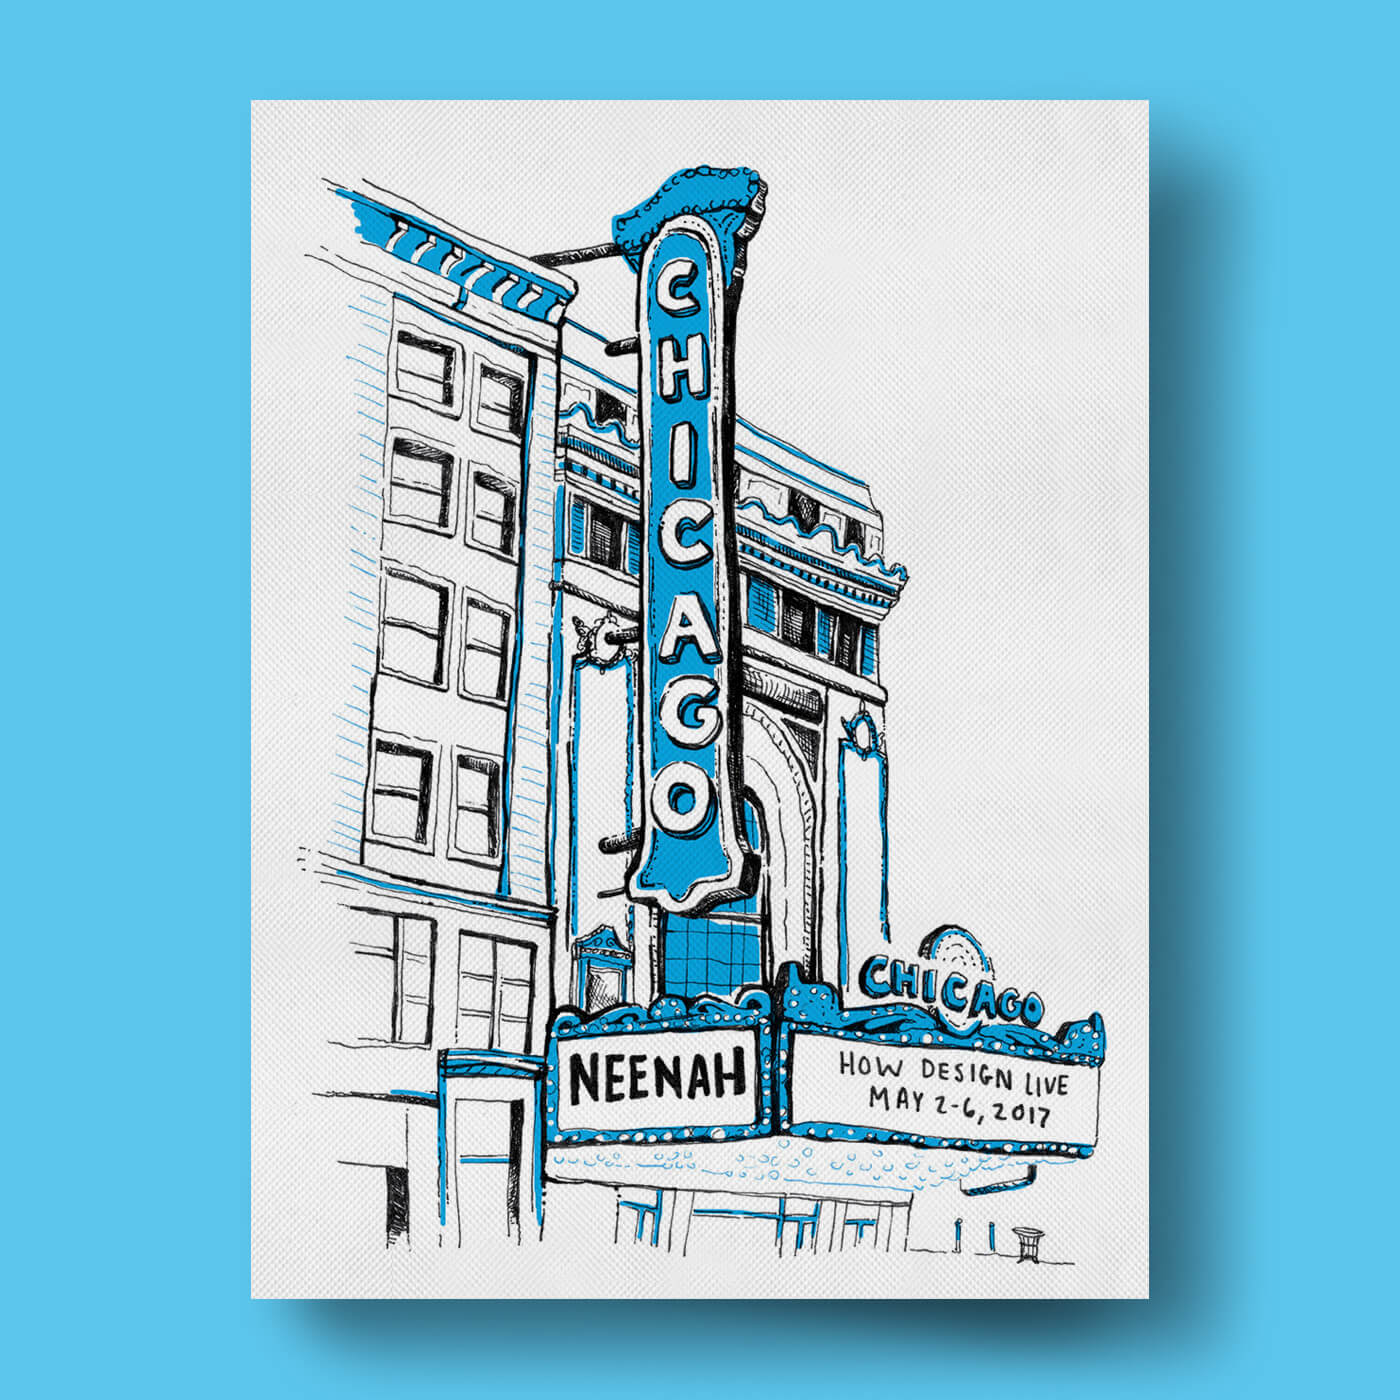 Neenah Presents Chicago - An illustrated guide of the Windy City, featuring seven maps of how to experience Chicago for designers, sightseers, pizza enthusiasts and more.IllustrationView Project →